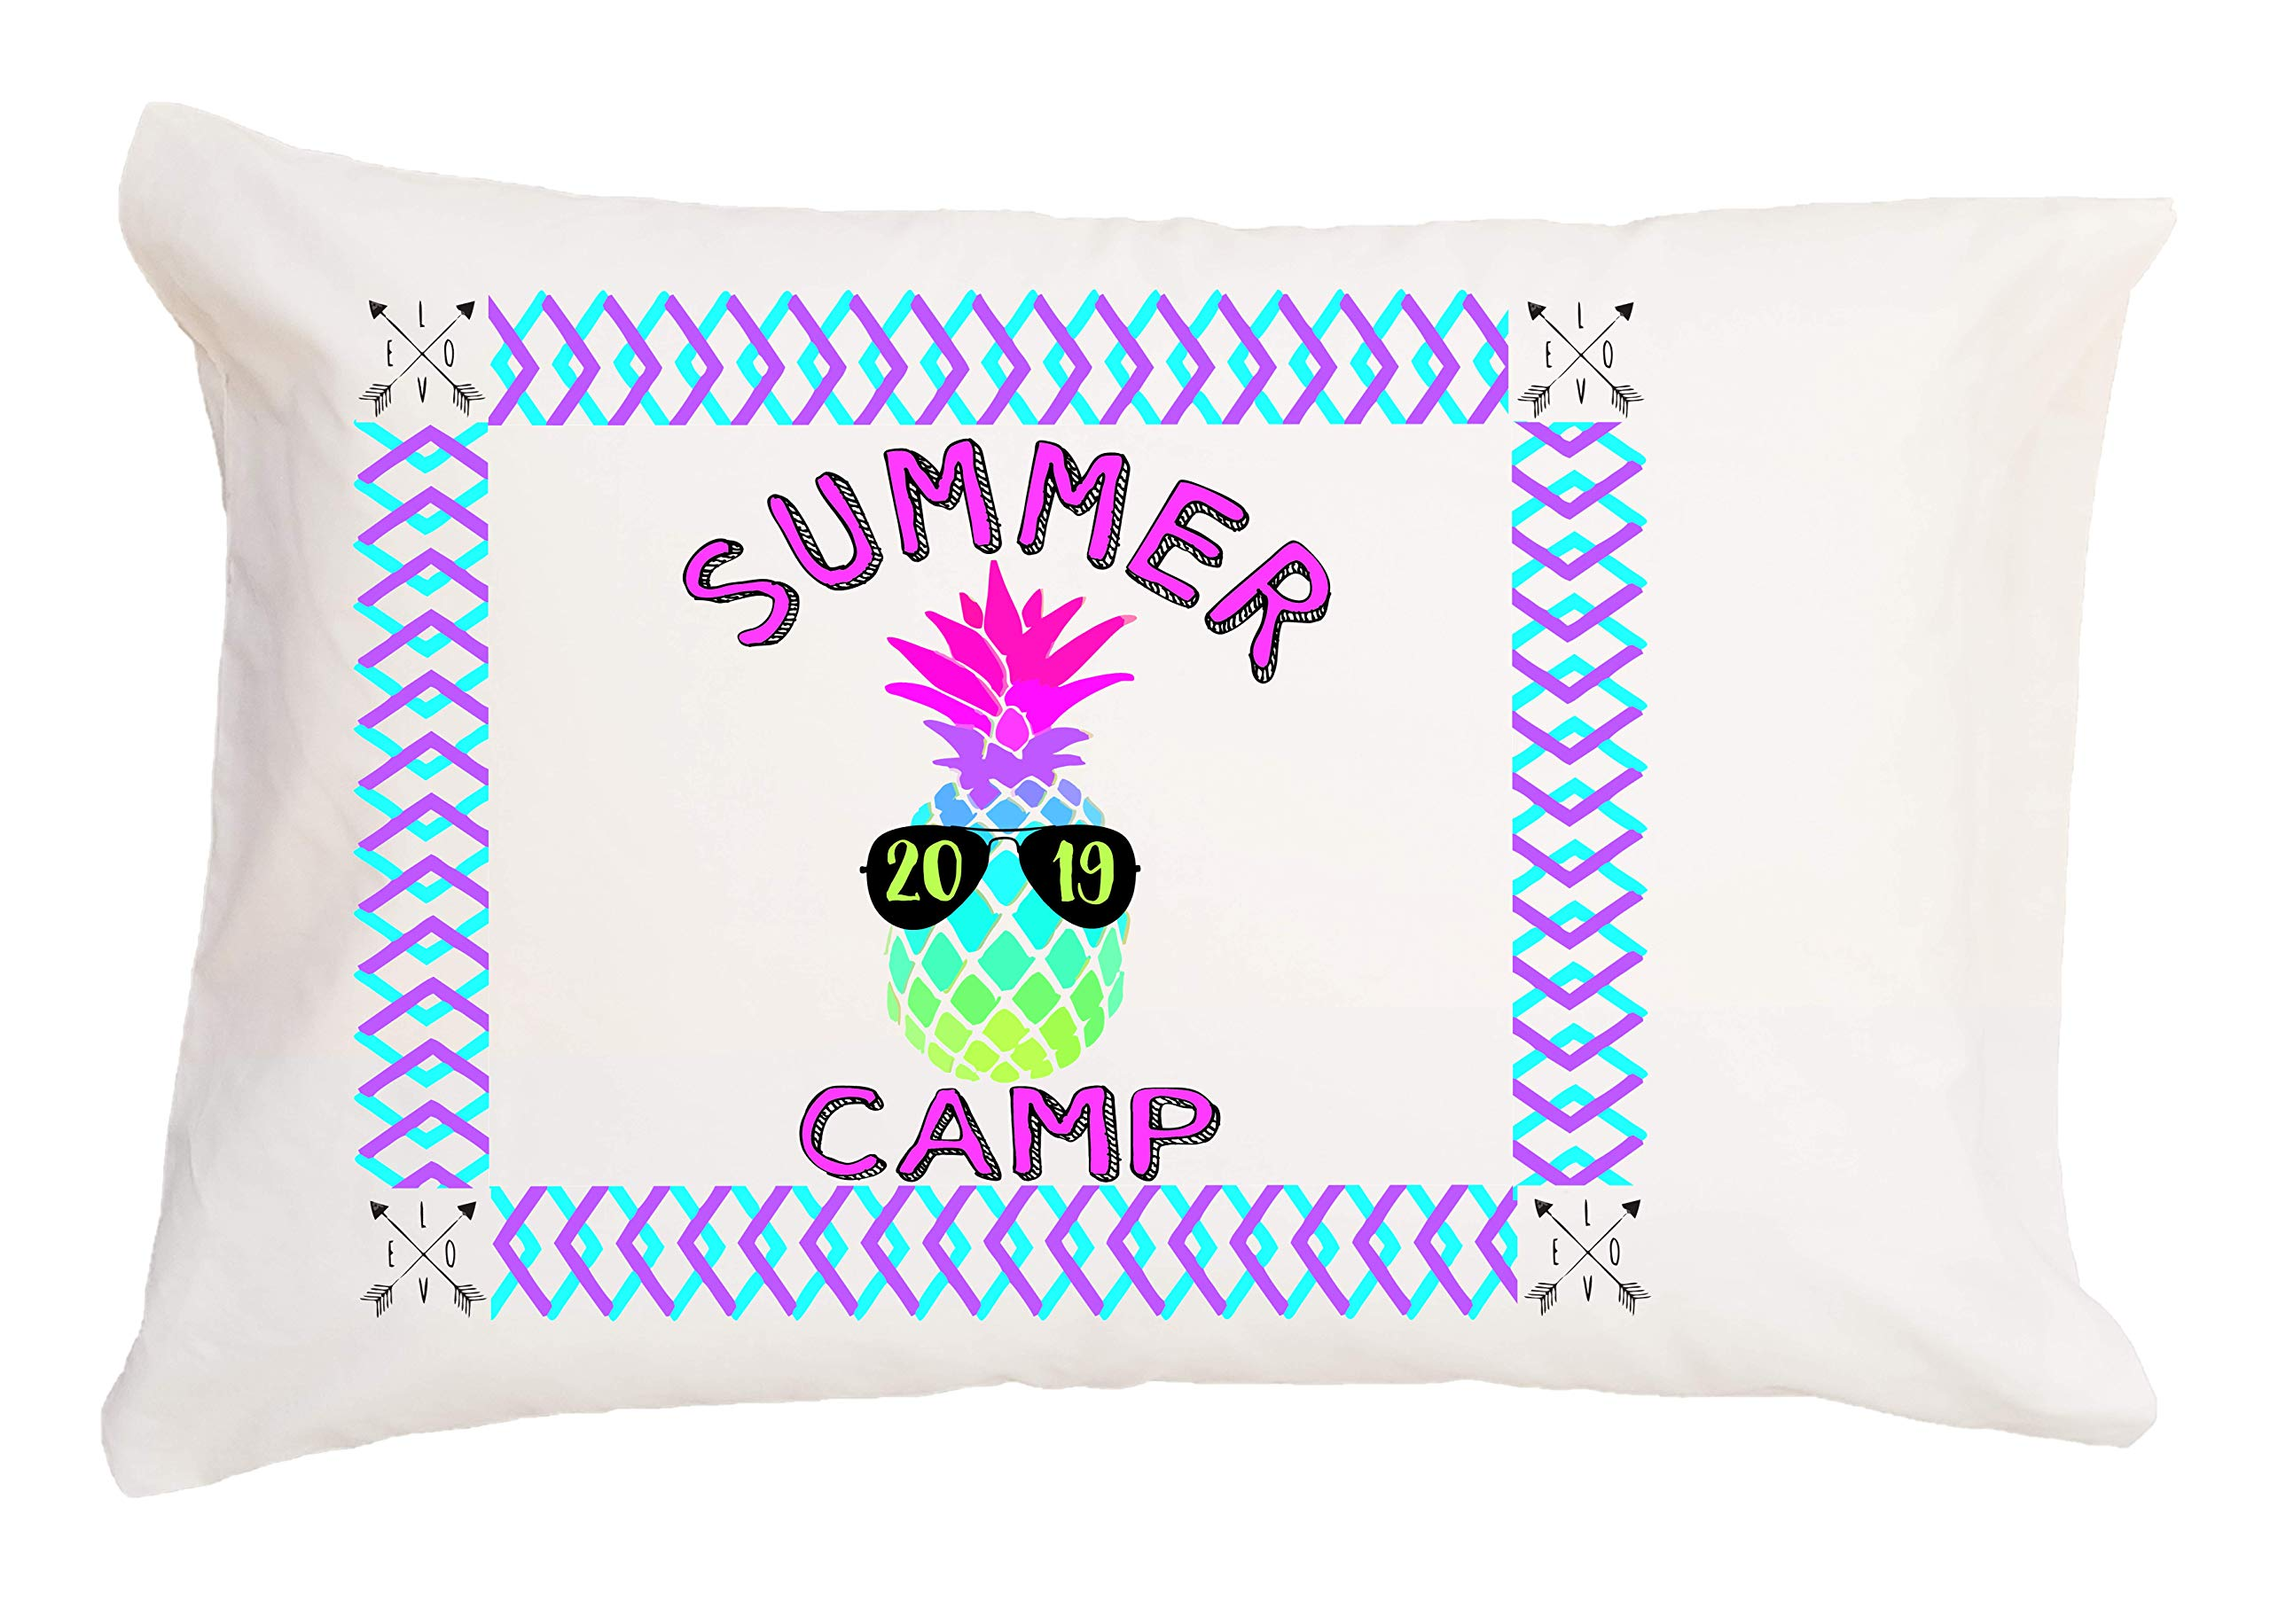 Bunnies and Bows Pineapple Summer Camp Autograph Pillowcase with Pen